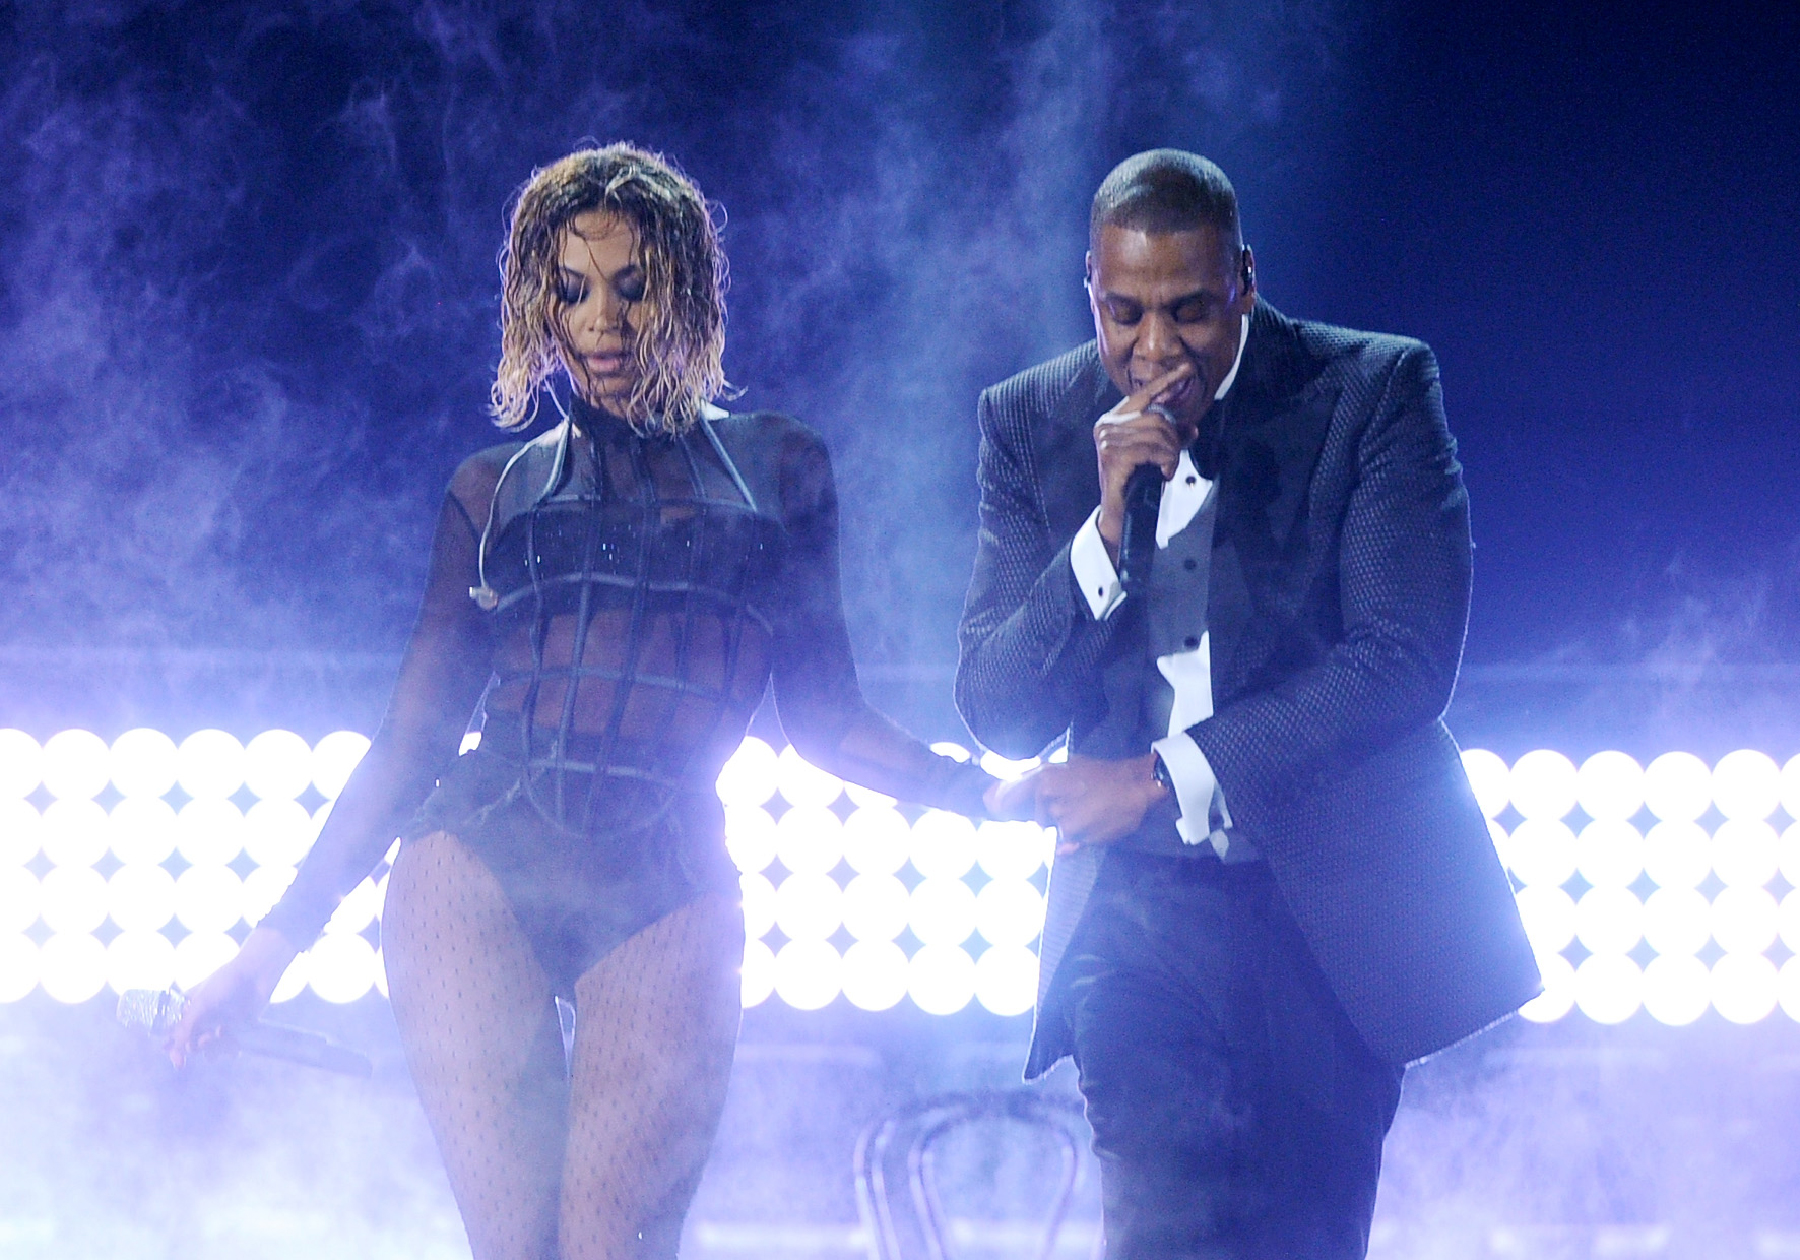 Jay Z, Beyoncé to Go 'On the Run' in Summer Tour